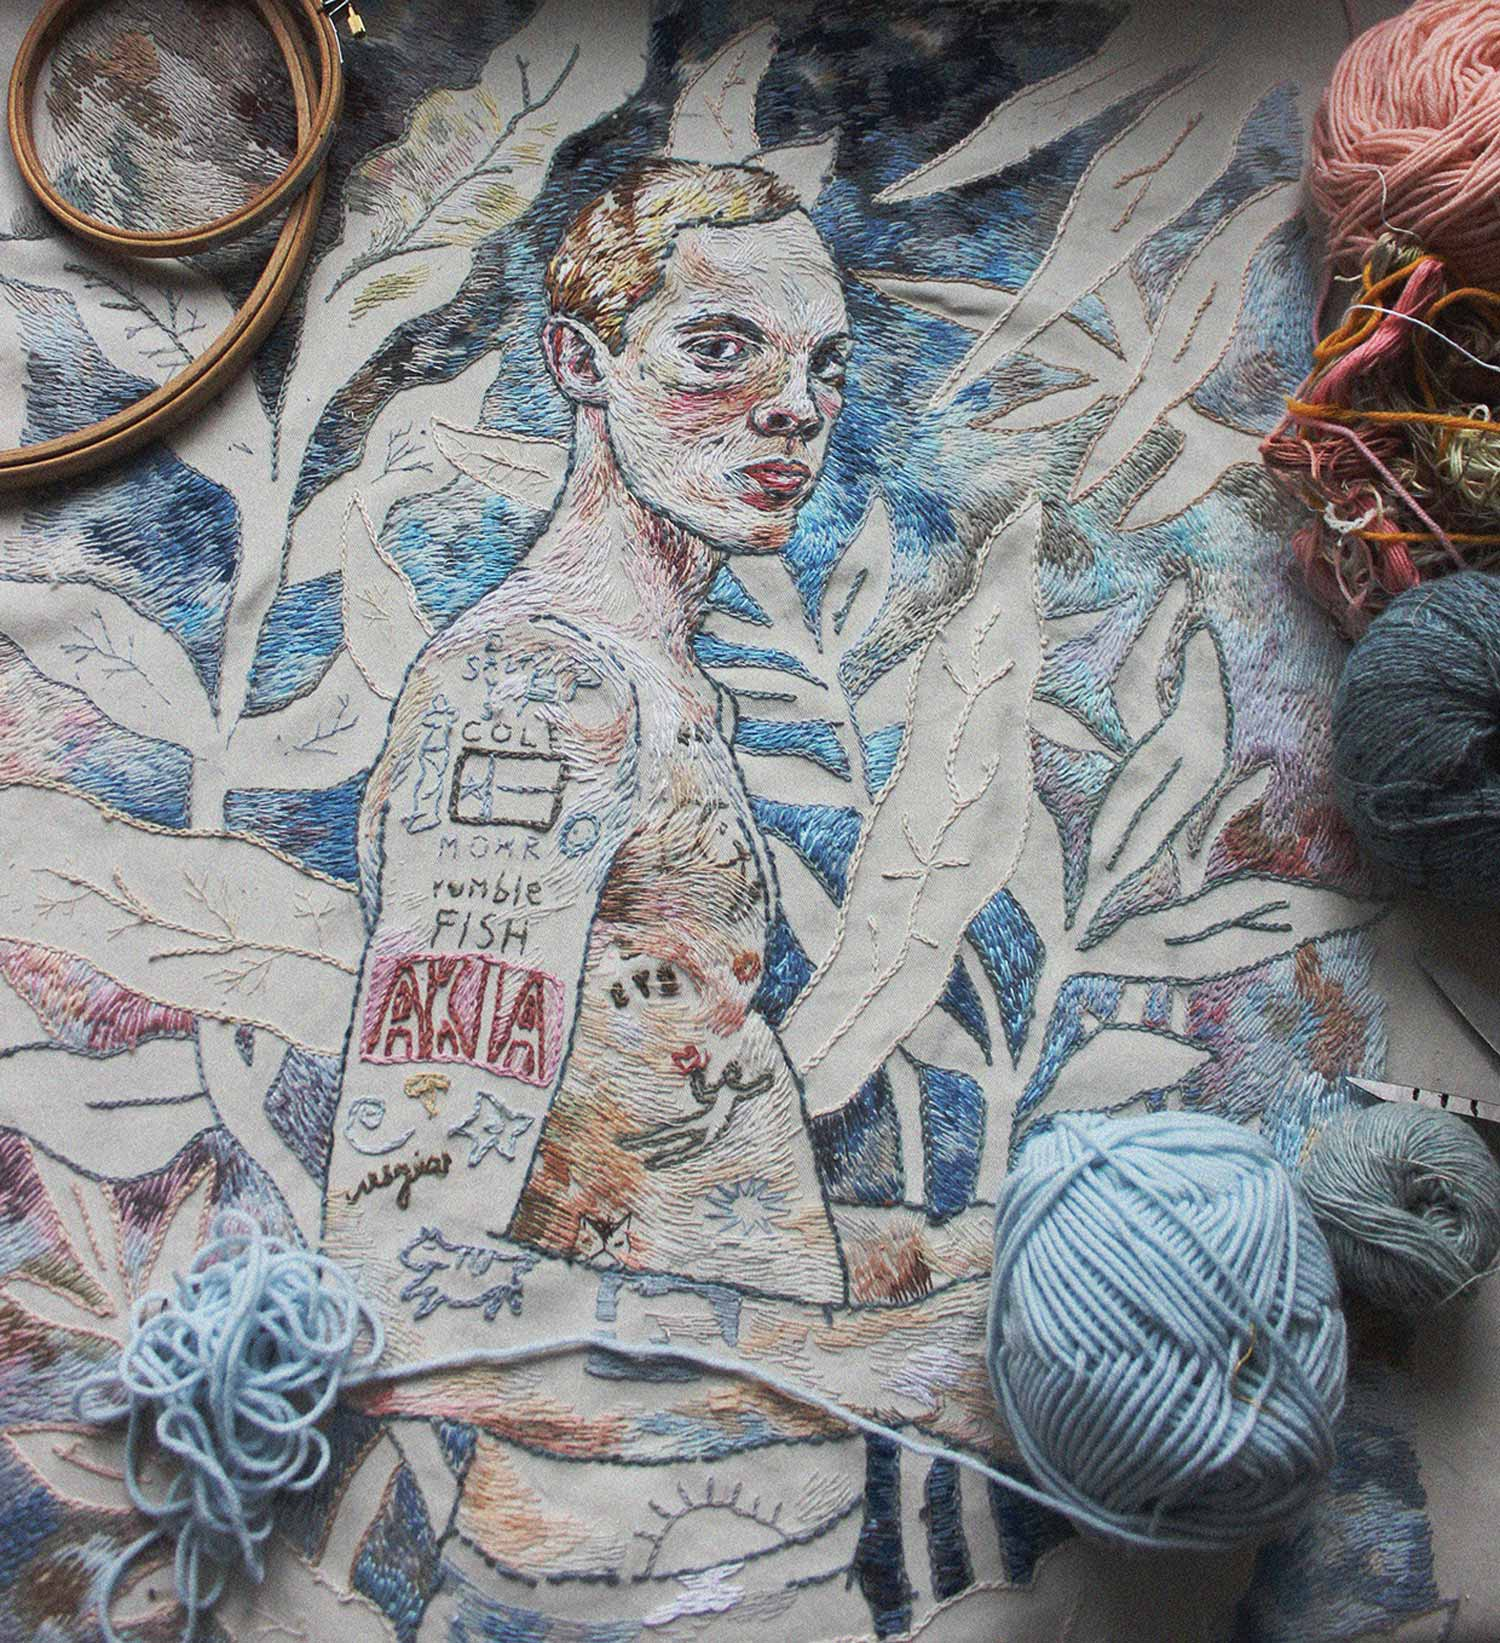 Embroidery by Lisa Smirnova